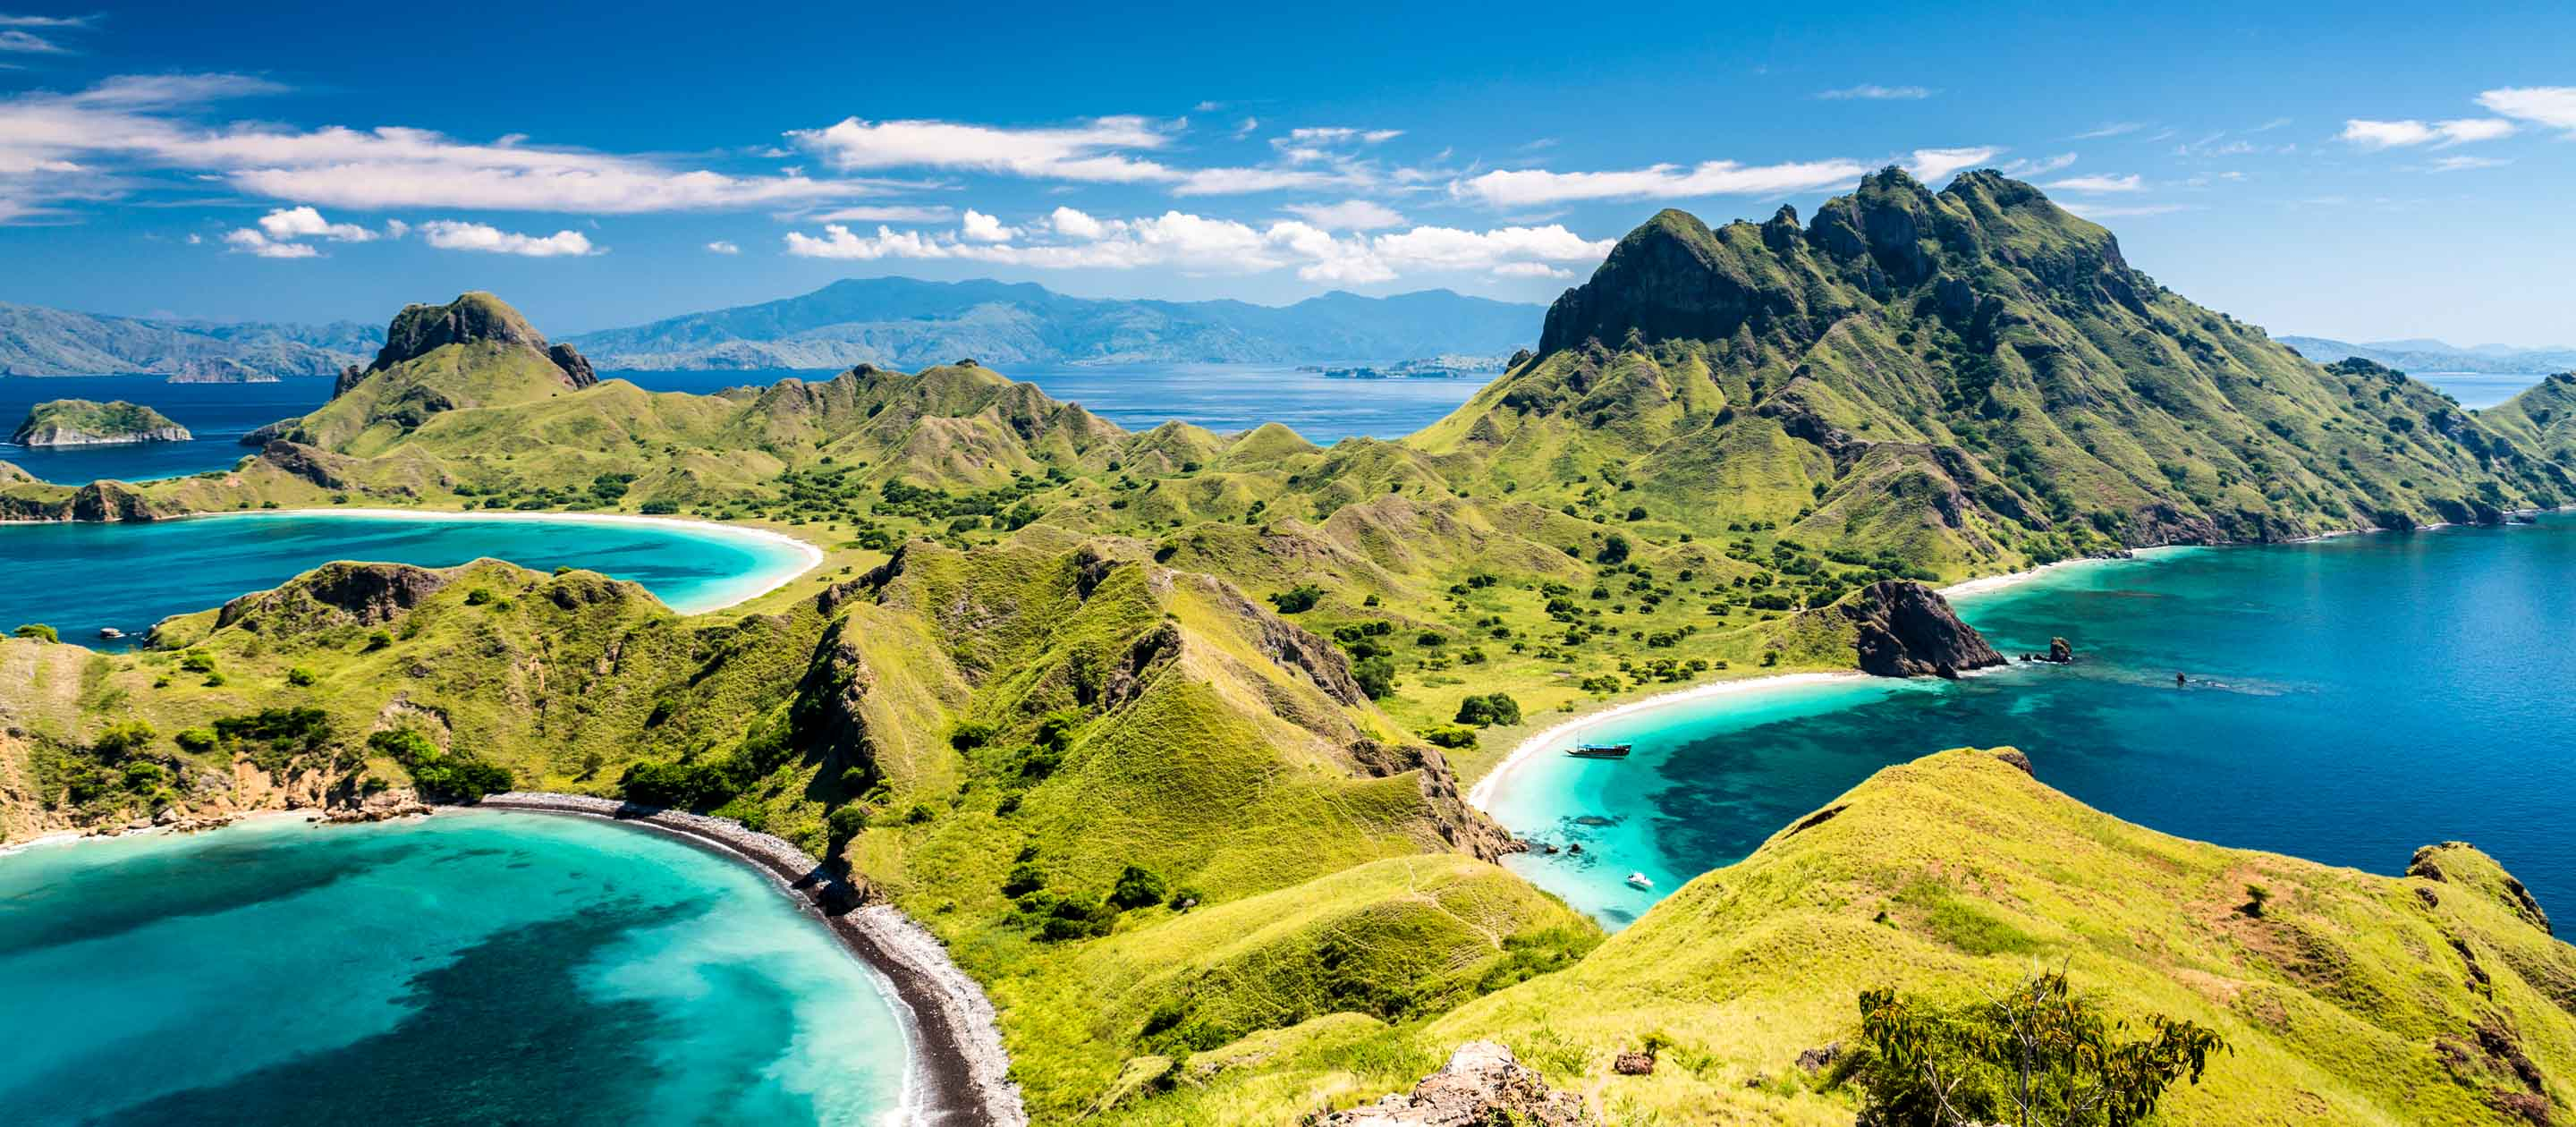 Aerial view of Komodo Island mountains, Indonesia